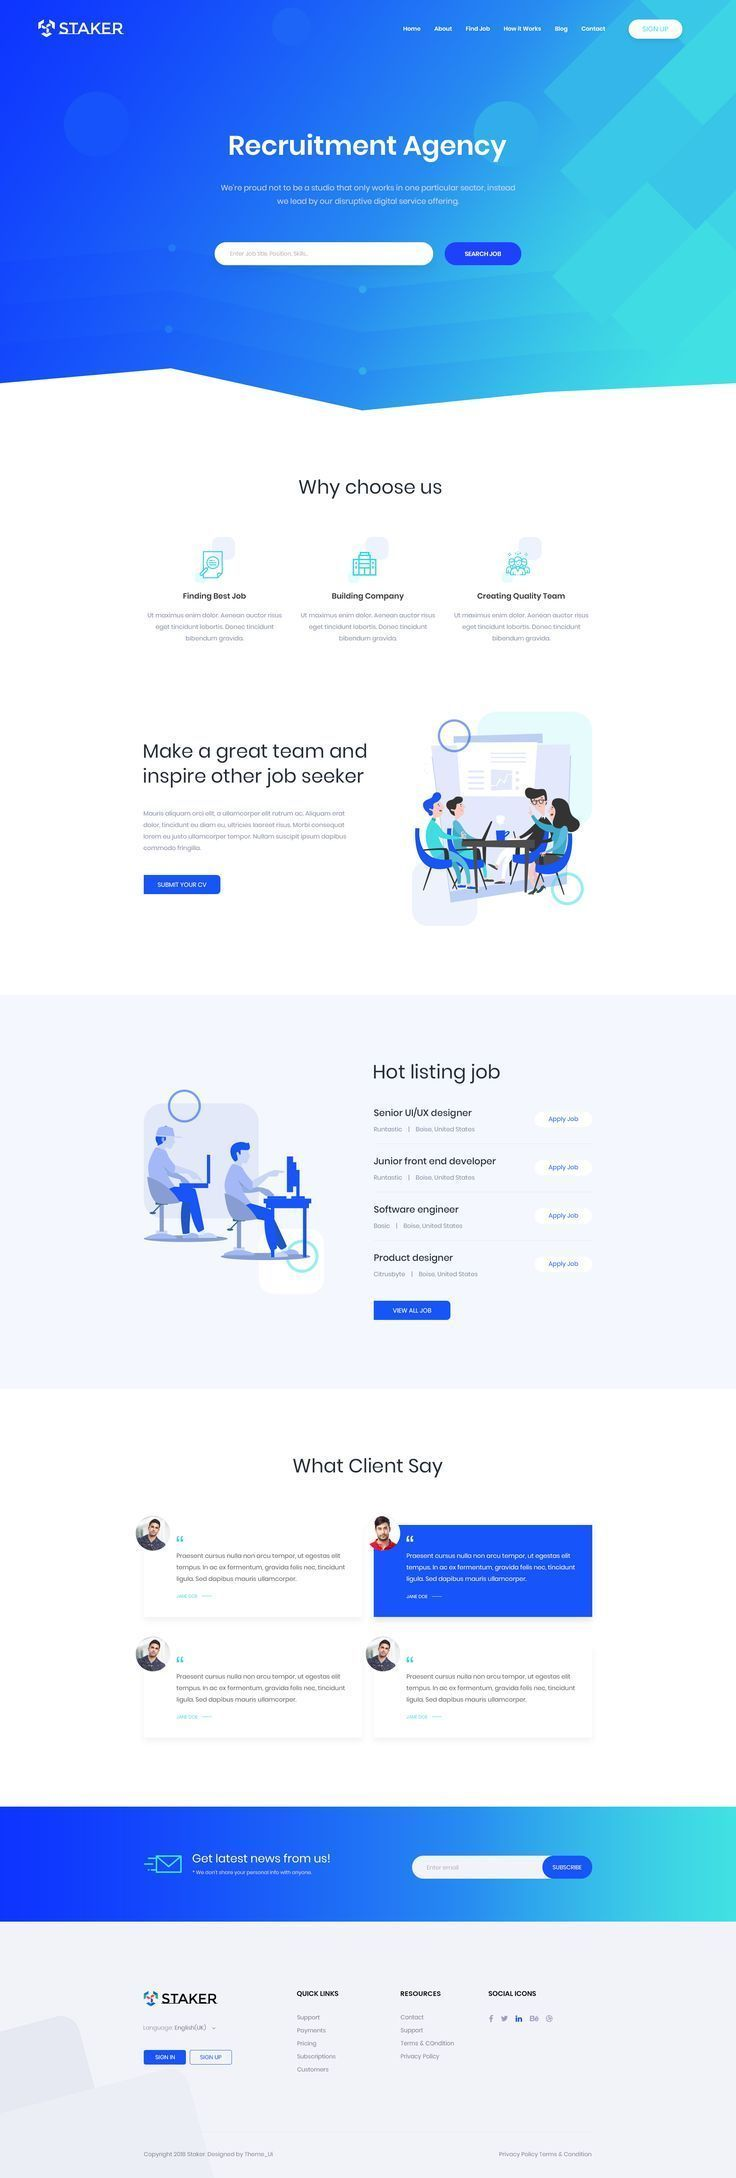 Agency Recruitment Landing Page Web Site Design Recruitment Website Design Web Design Tips Web Design Agency